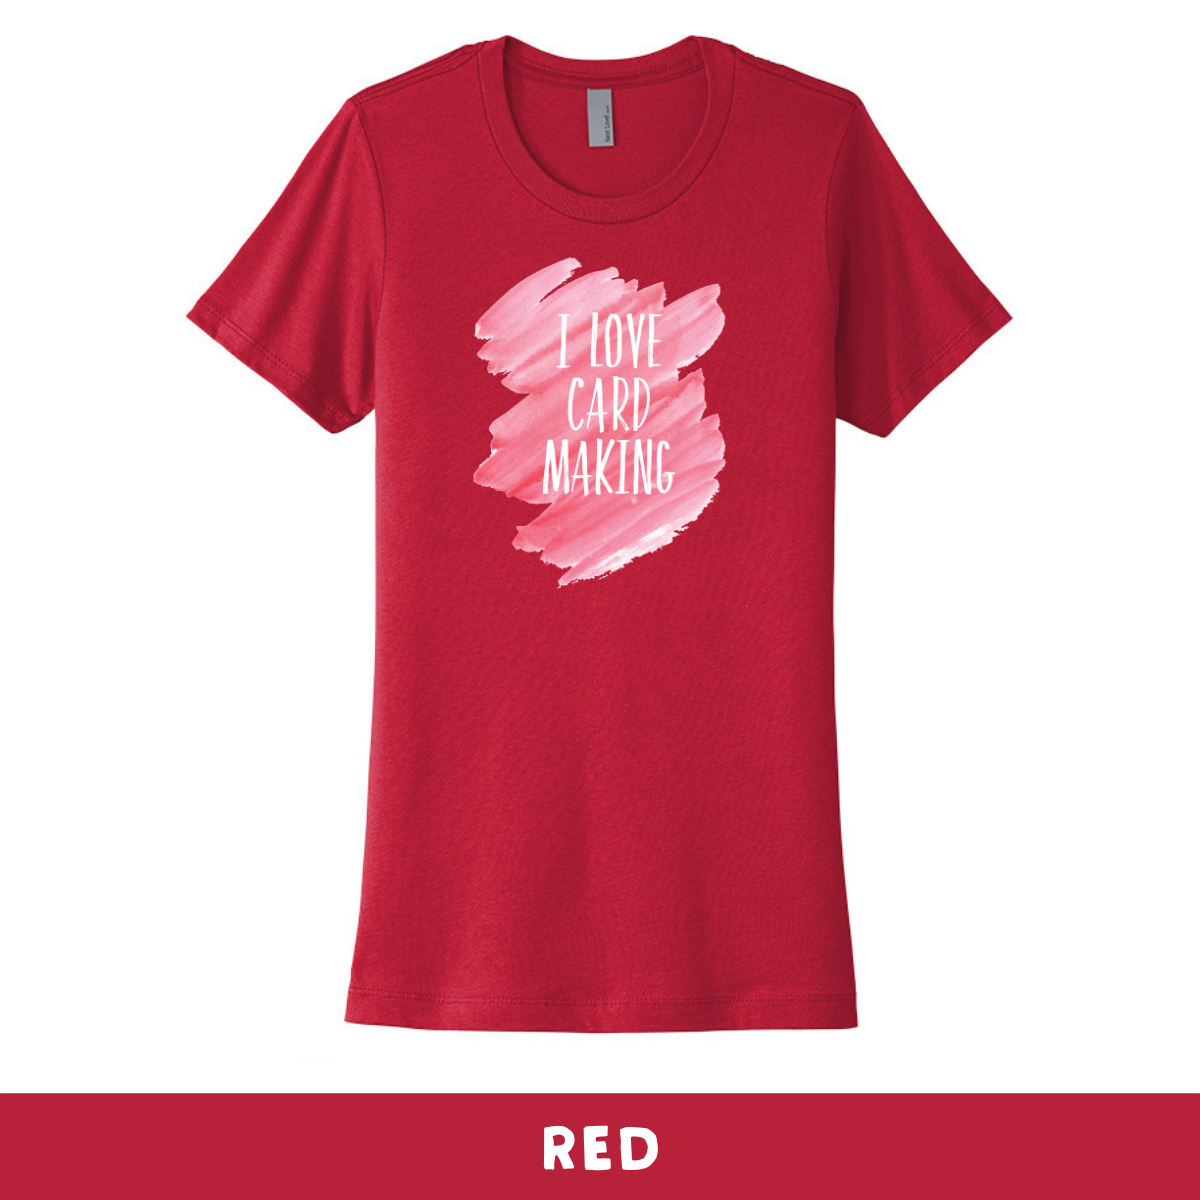 Red - Crew Neck Boyfriend Tee - I Love Cardmaking